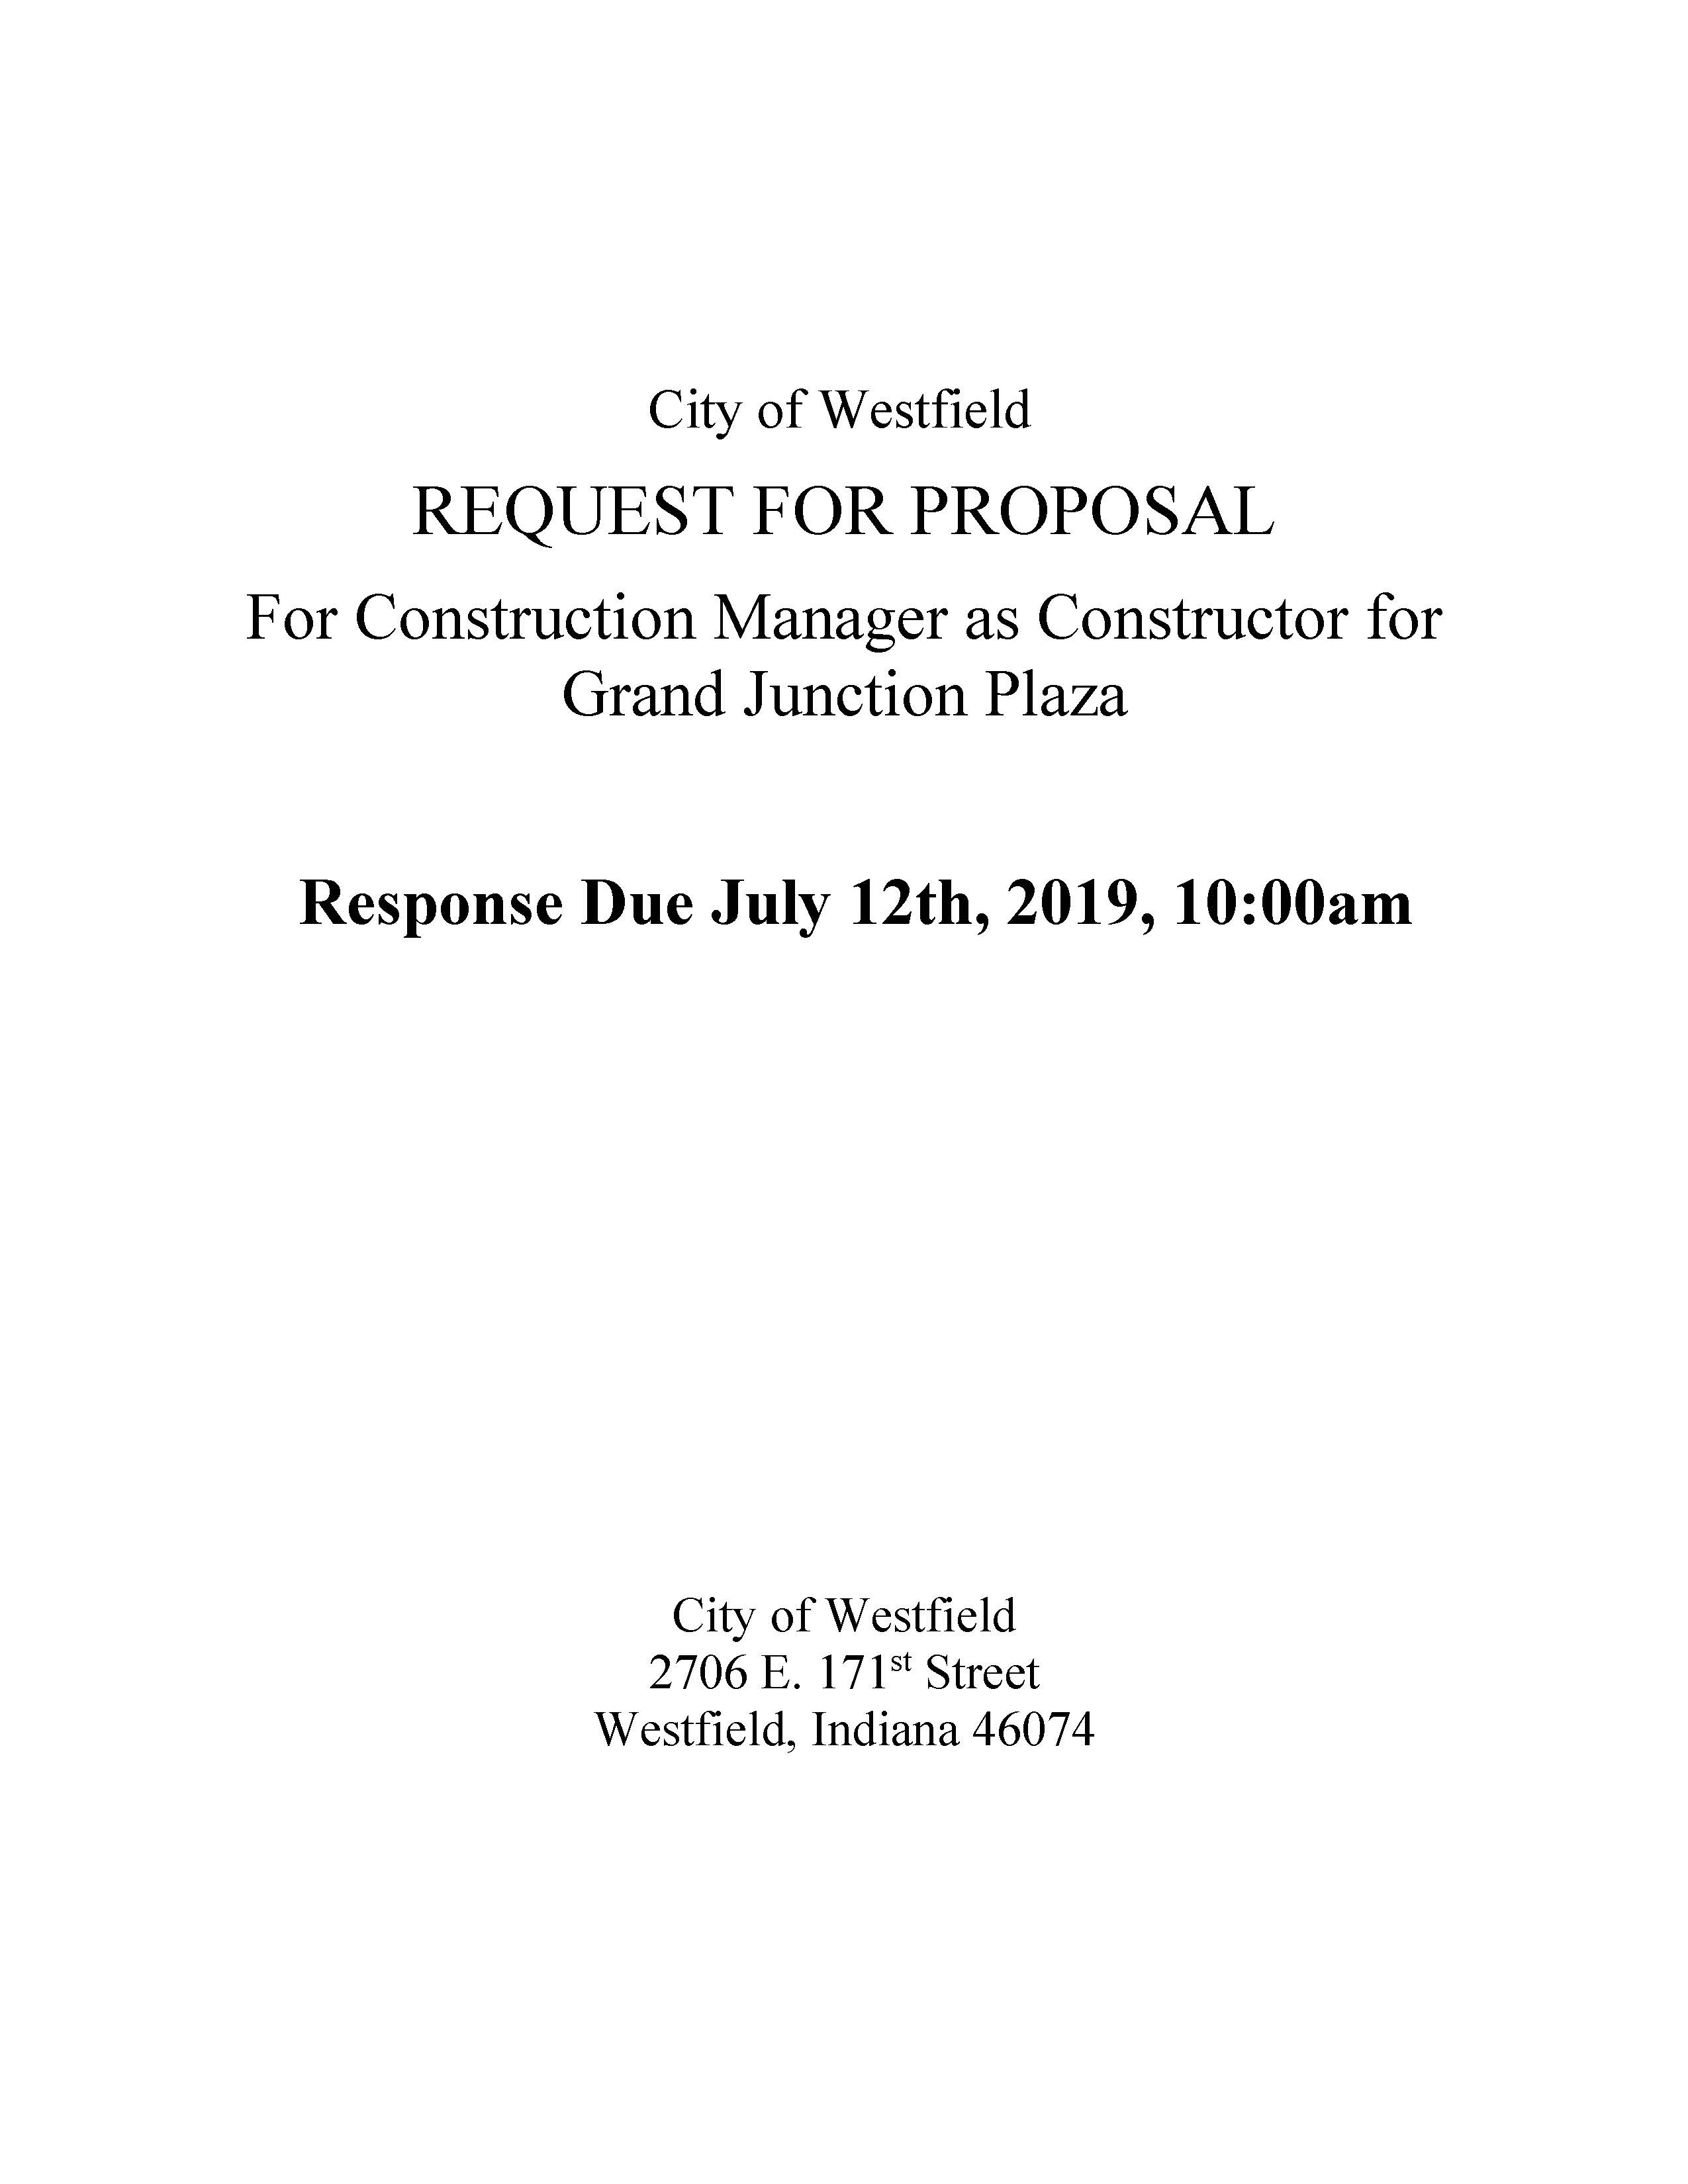 Photo for: City of Westfield Releases a Request for Proposals for Construction Management of the Grand Junction Plaza Park Project